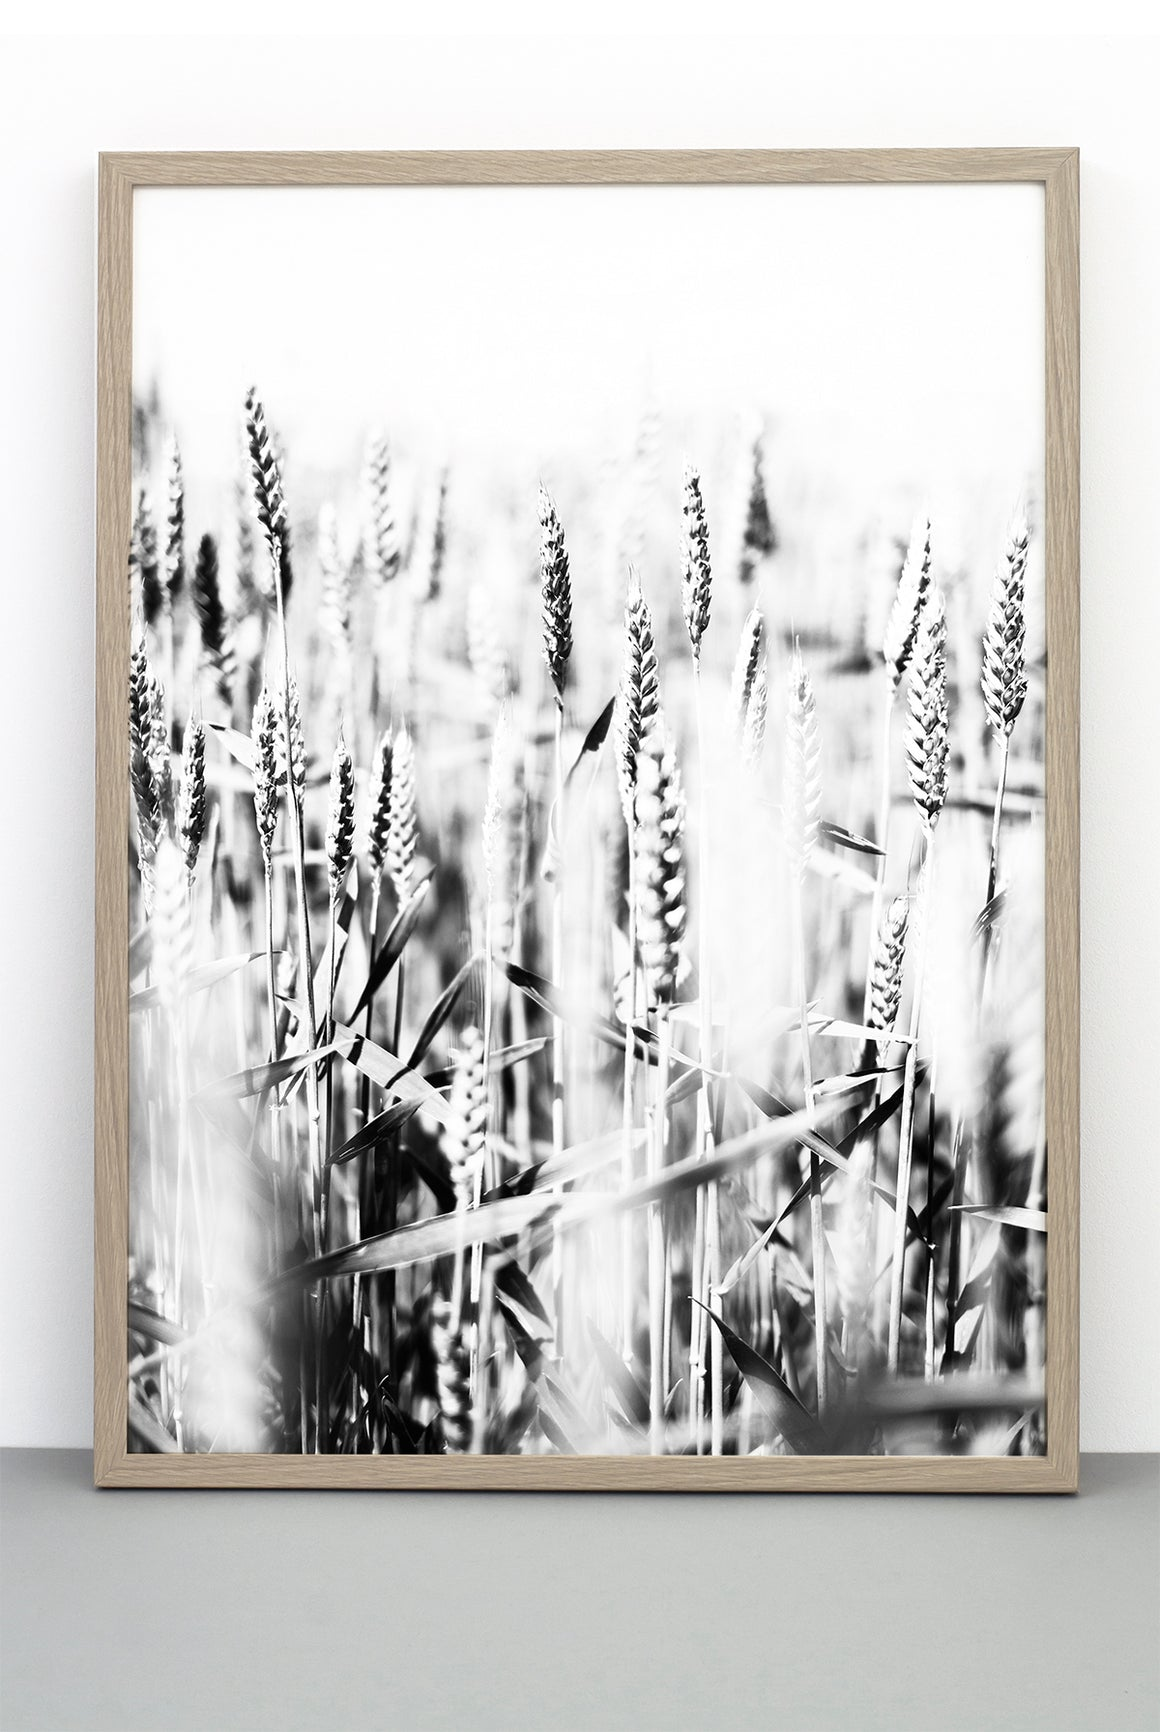 WHOLESALE WHEAT PRINT, PHOTOGRAPHIC POSTER FIELD OF WHEAT